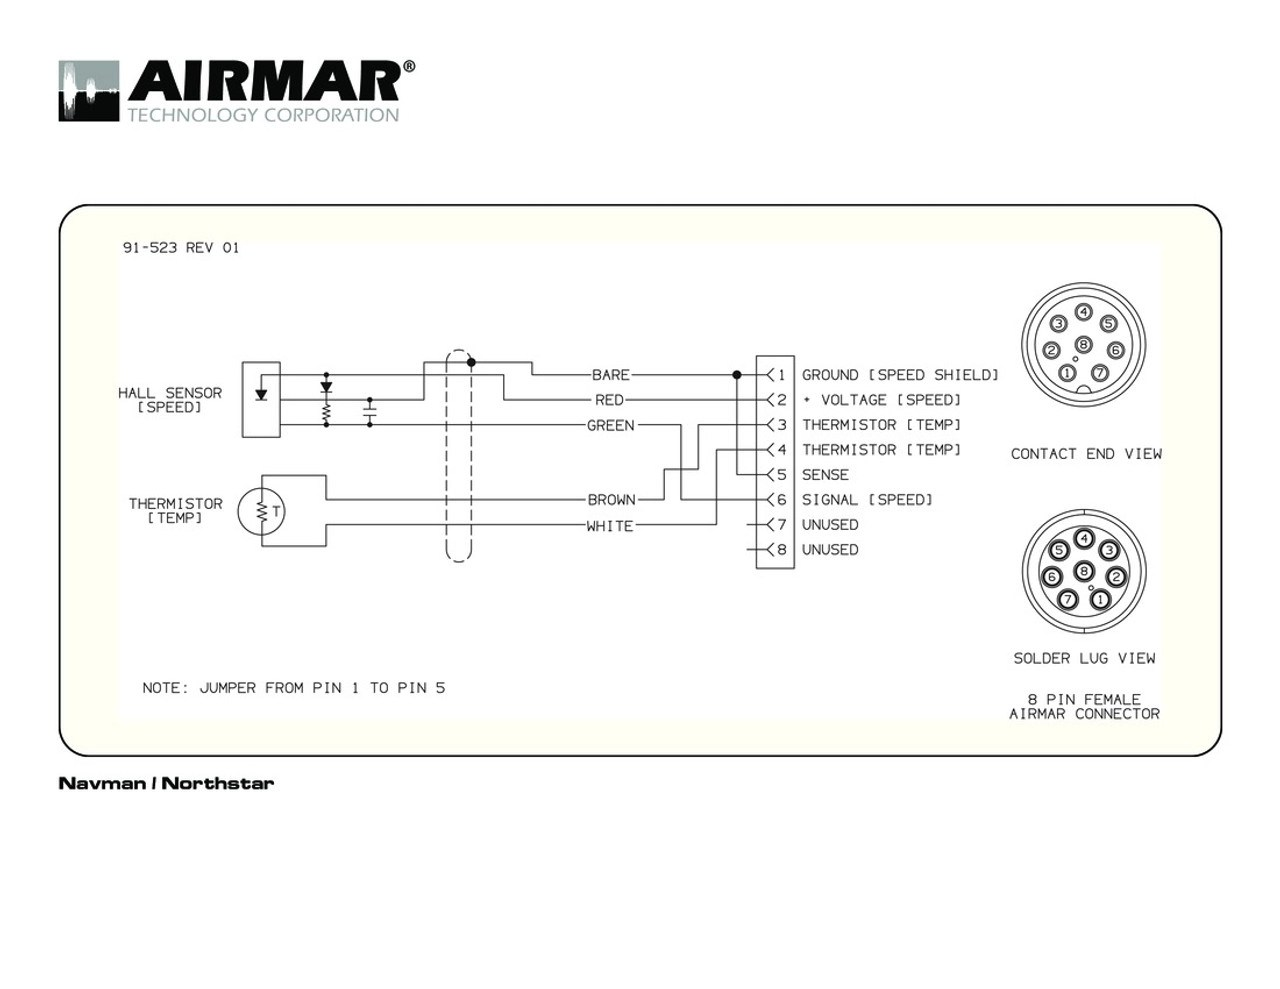 hight resolution of northstar wiring diagram wiring diagram g8 baja wiring diagram airmar wiring diagram navman northstar blue